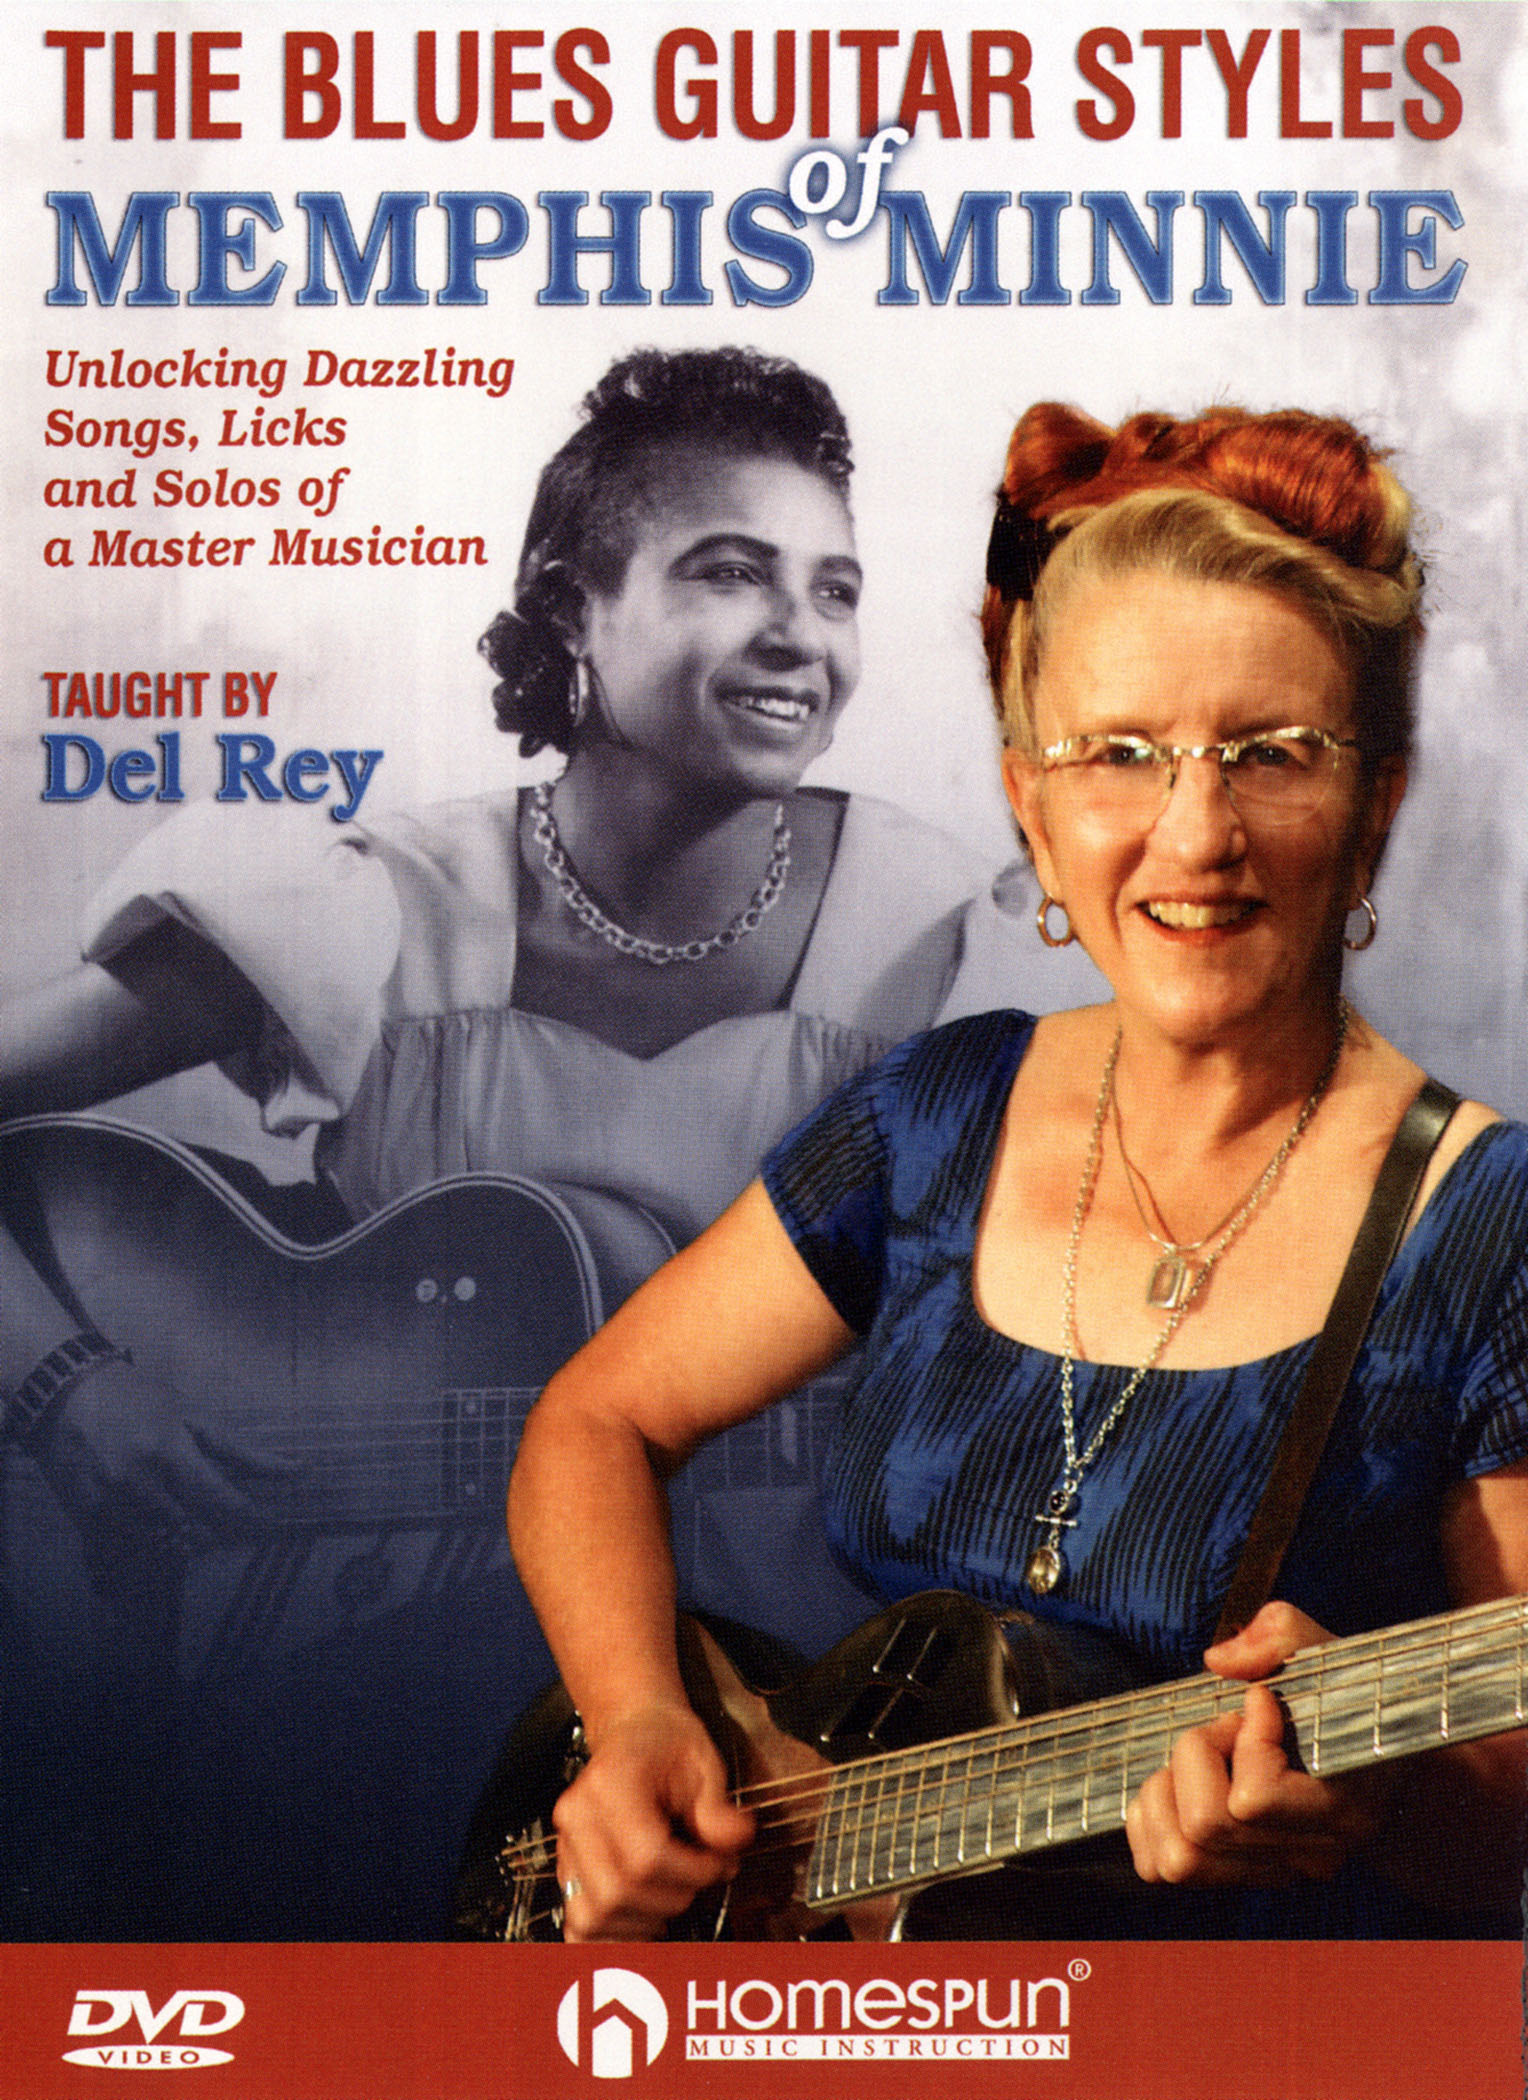 The Blue Guitar Styles of Memphis Minnie